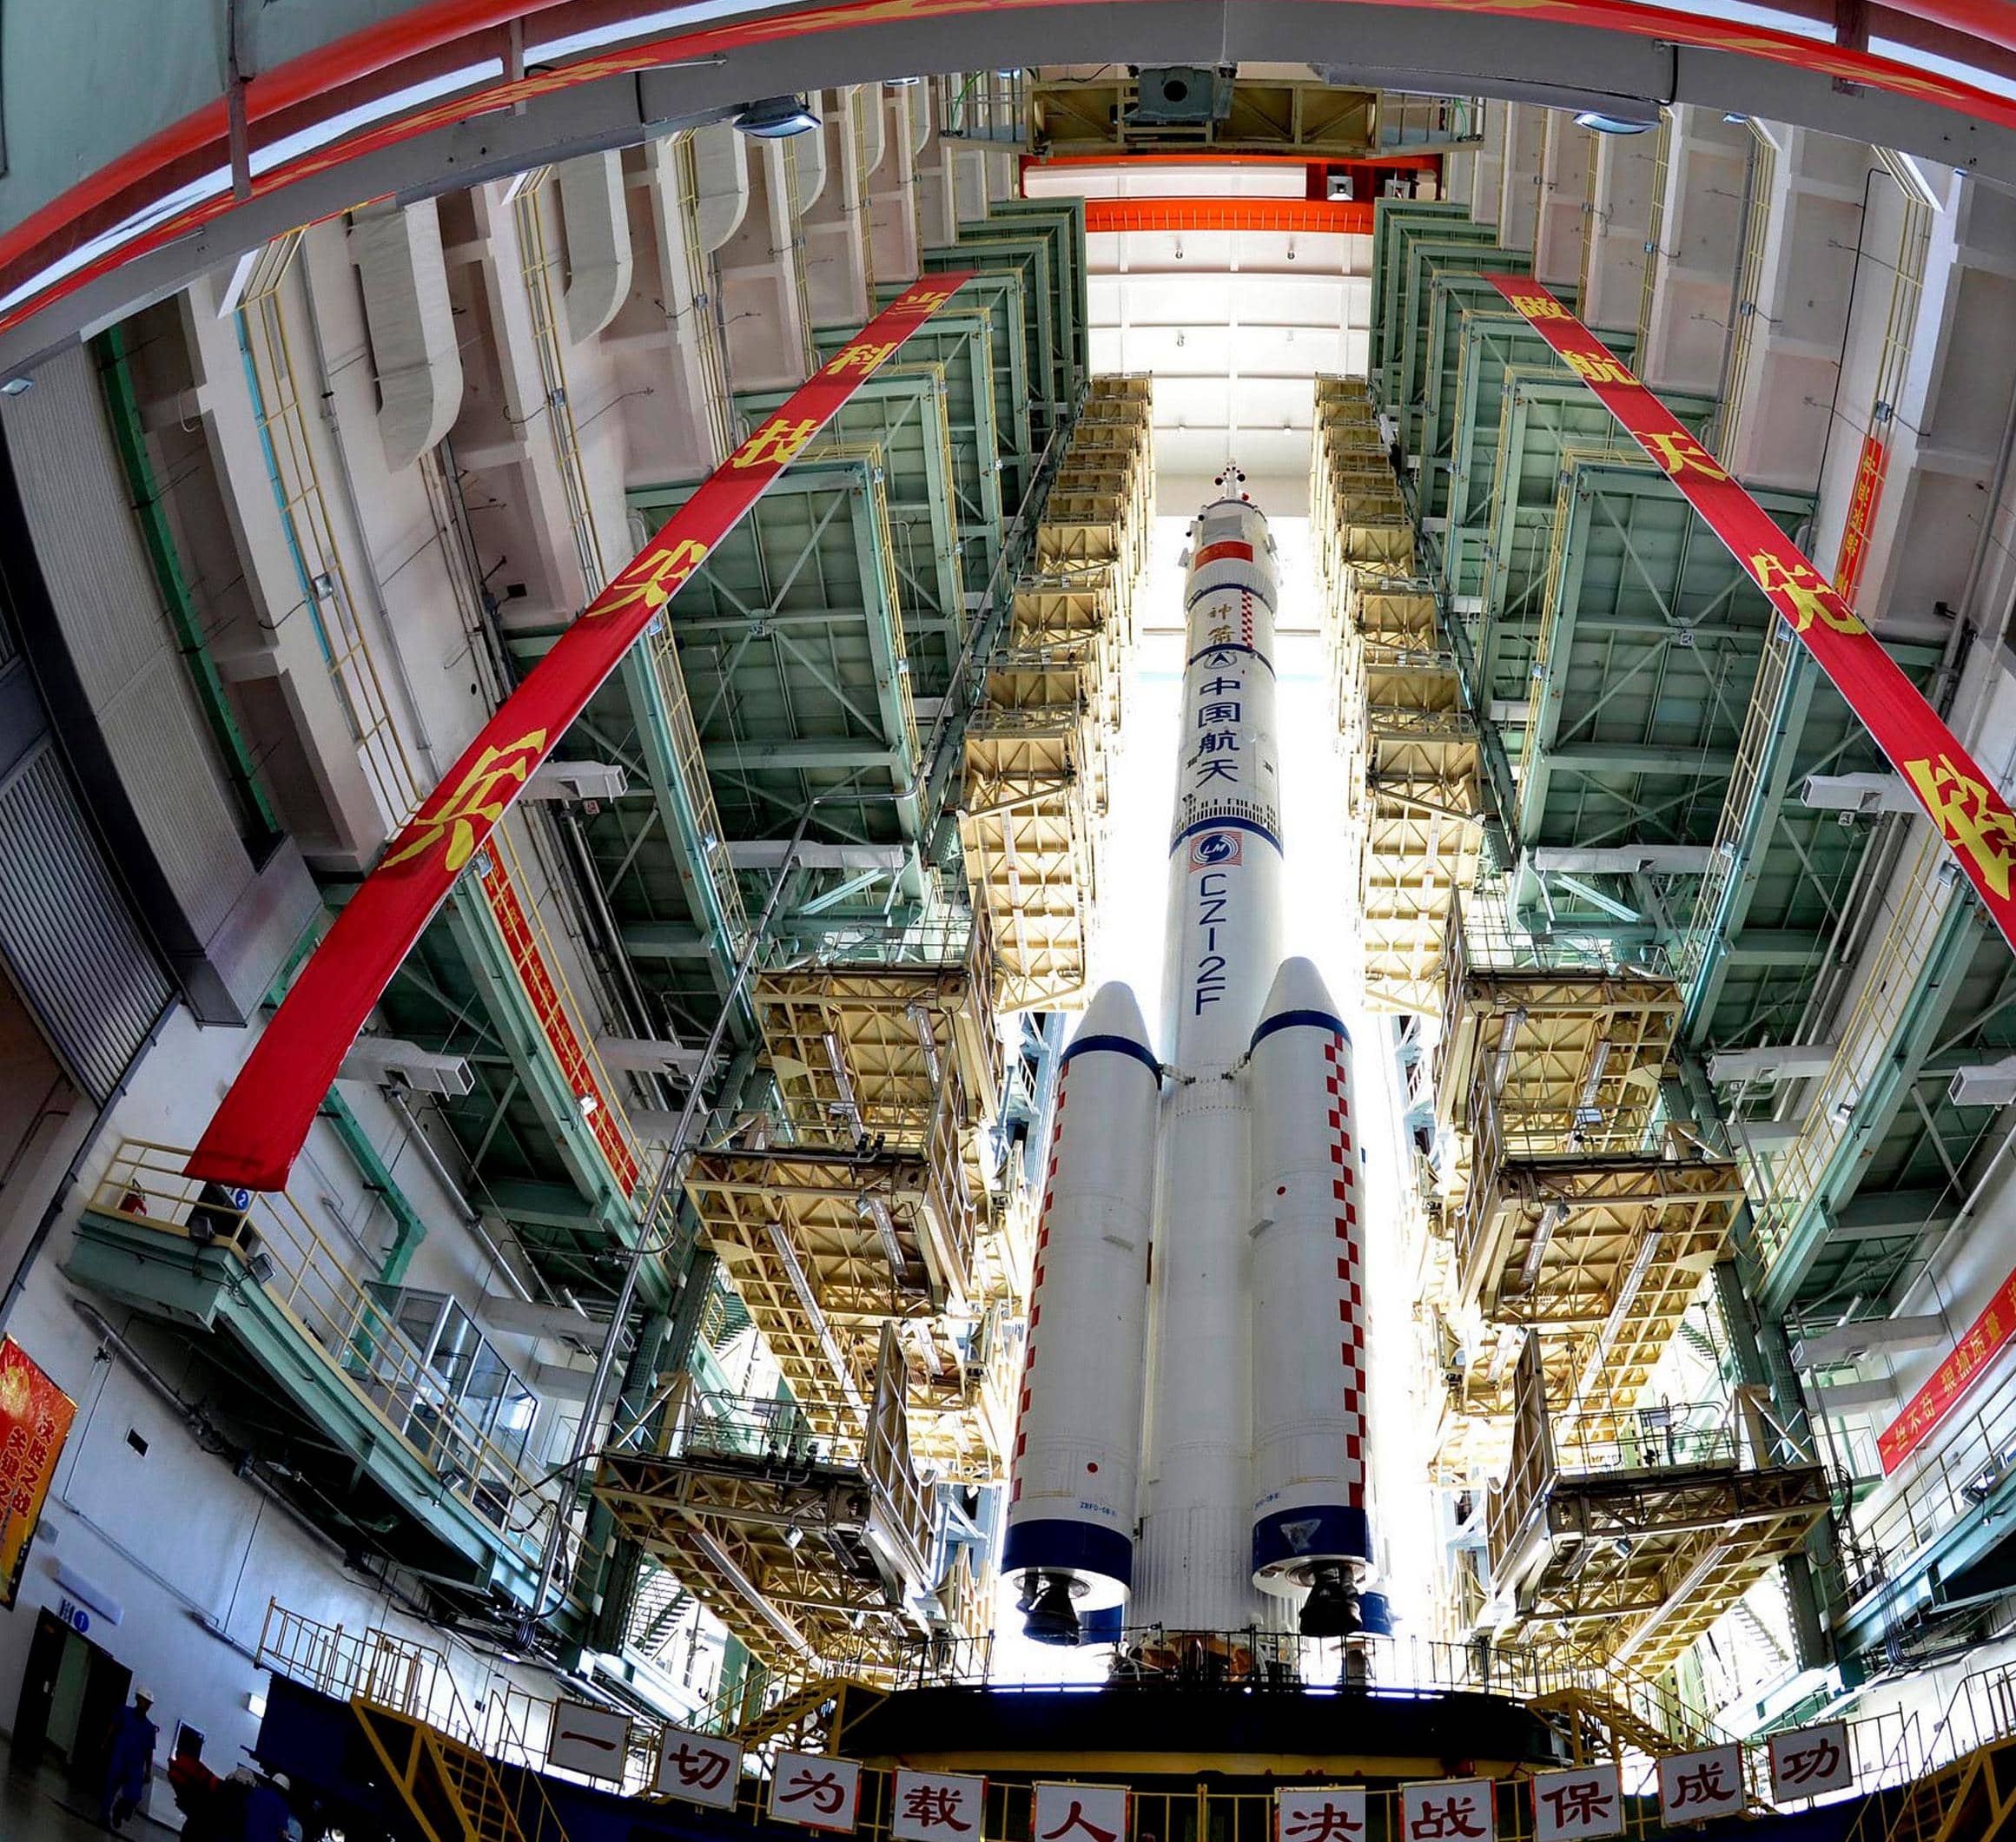 CHINA'S FIRST REUSABLE SPACECRAFT LANDS AFTER 2-DAY FLIGHT